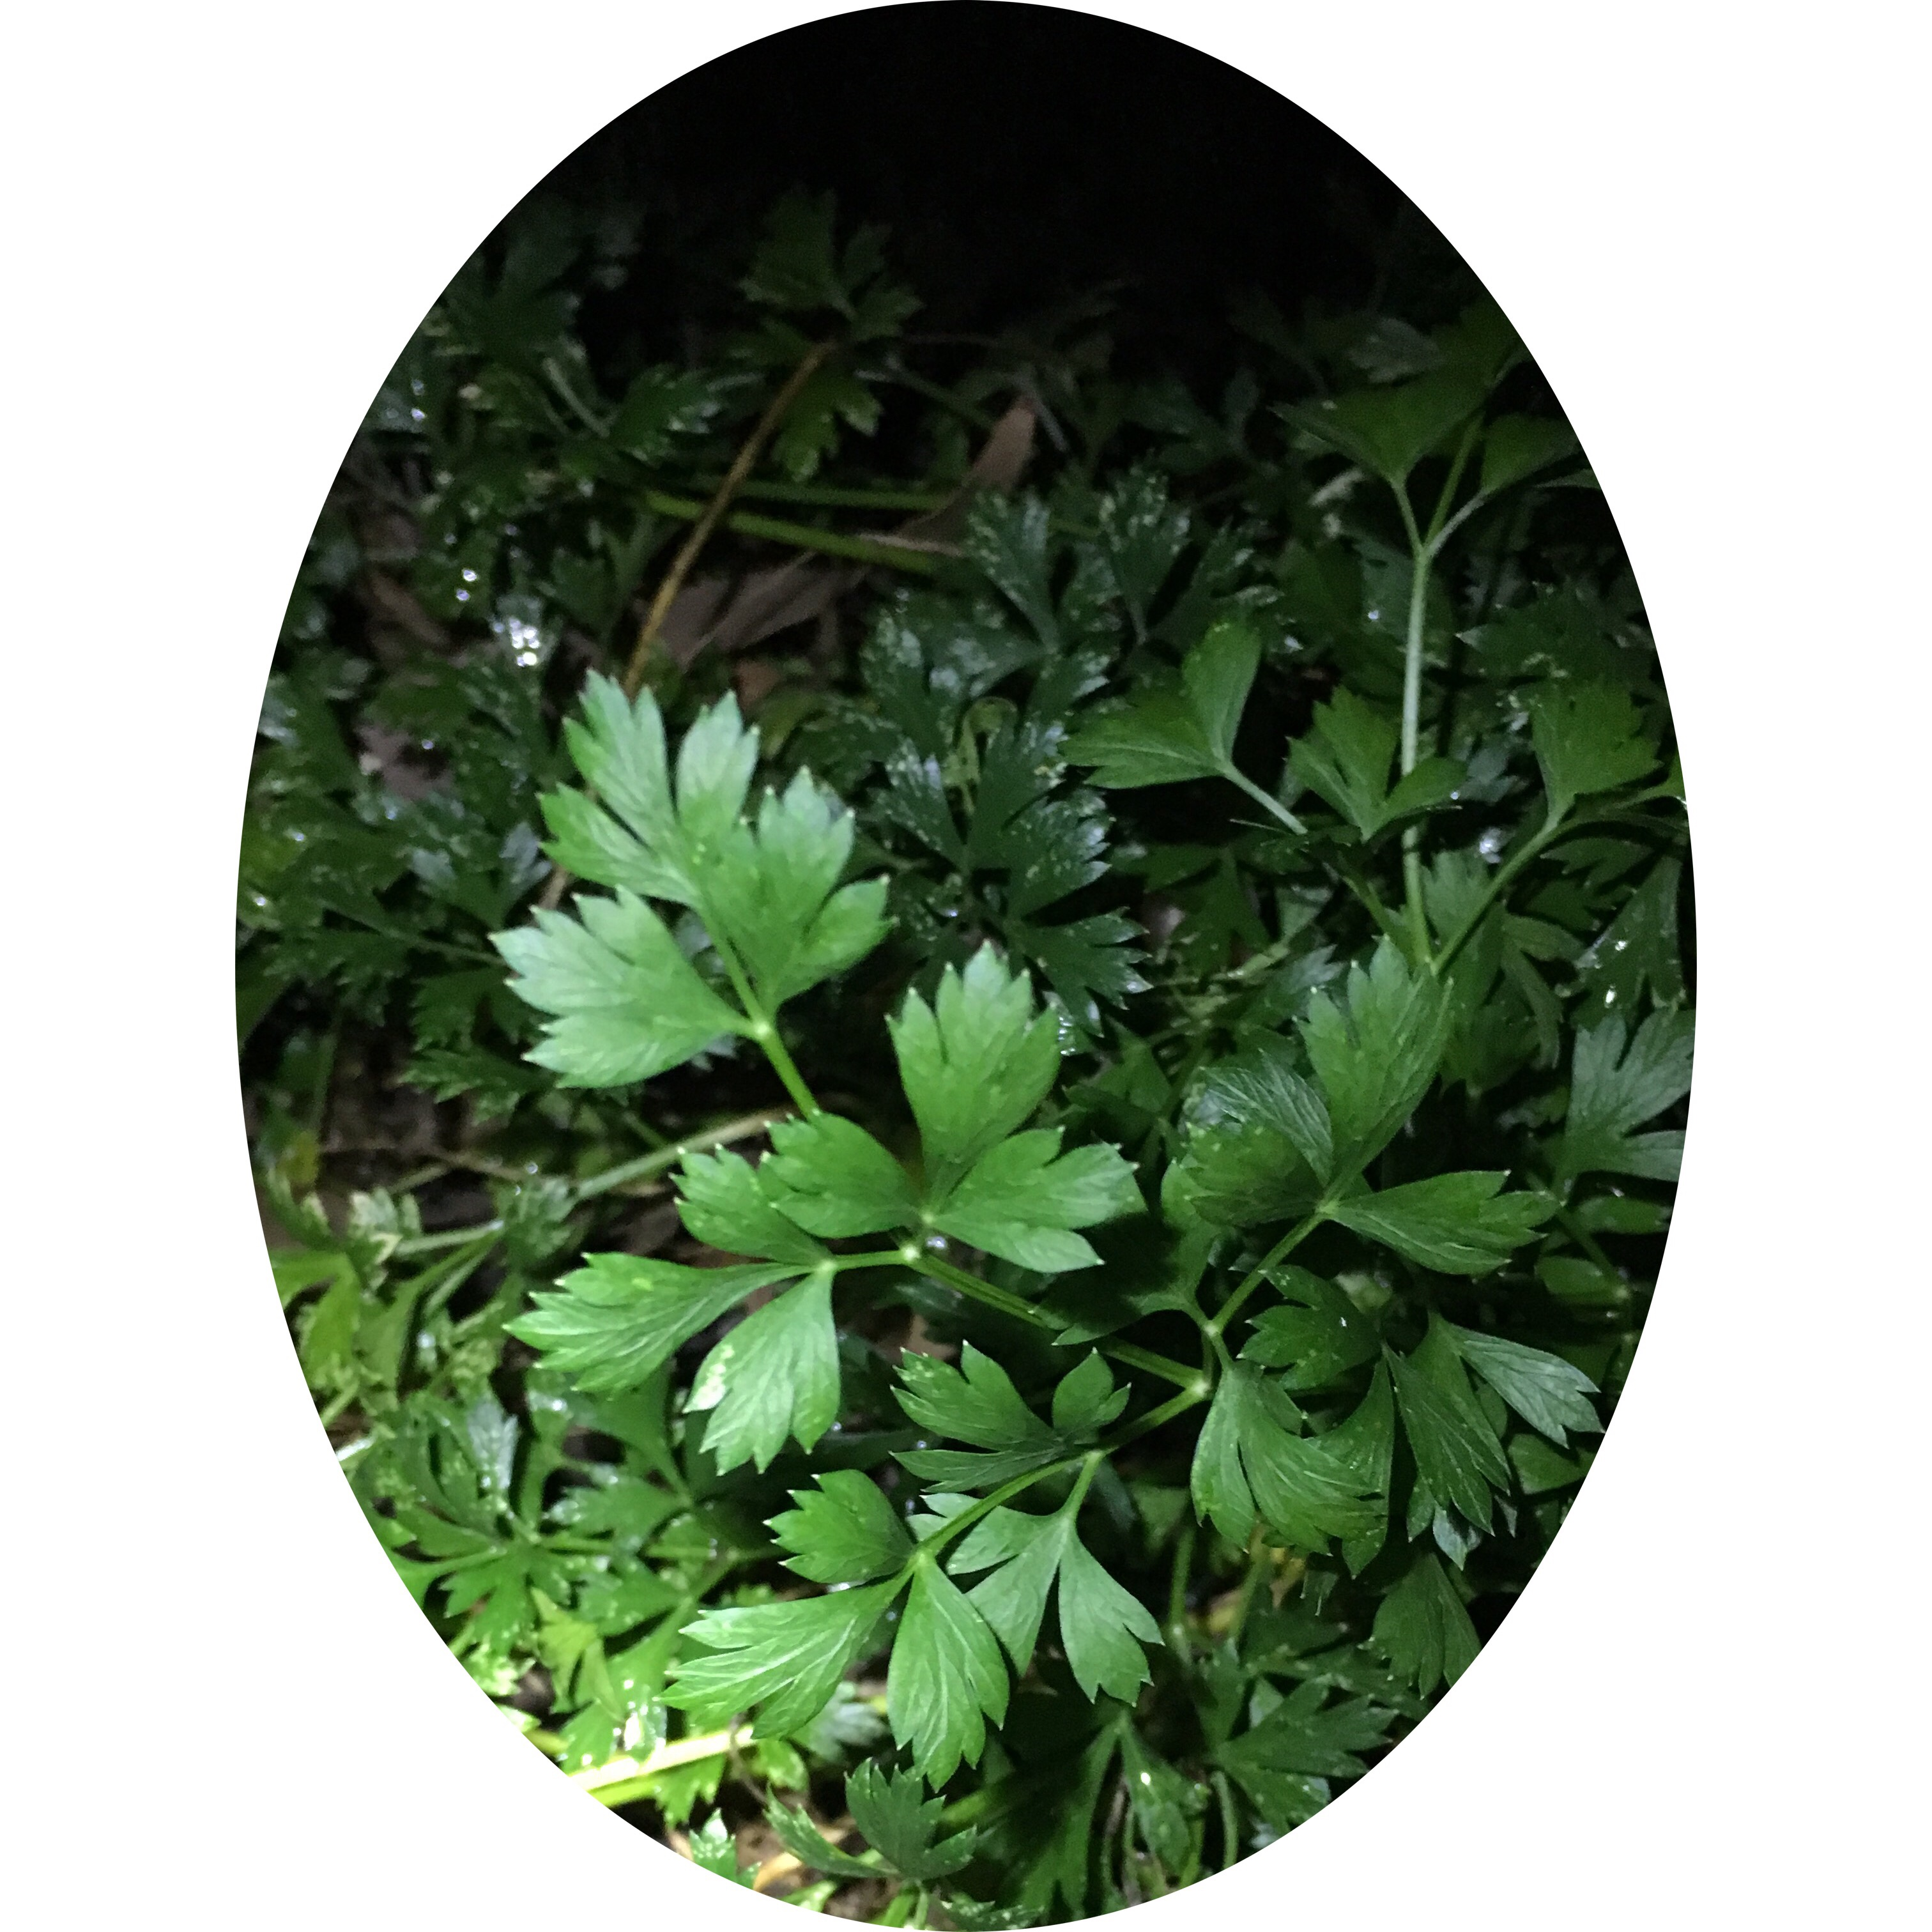 Hardy clump of Flat-leaf Parsley